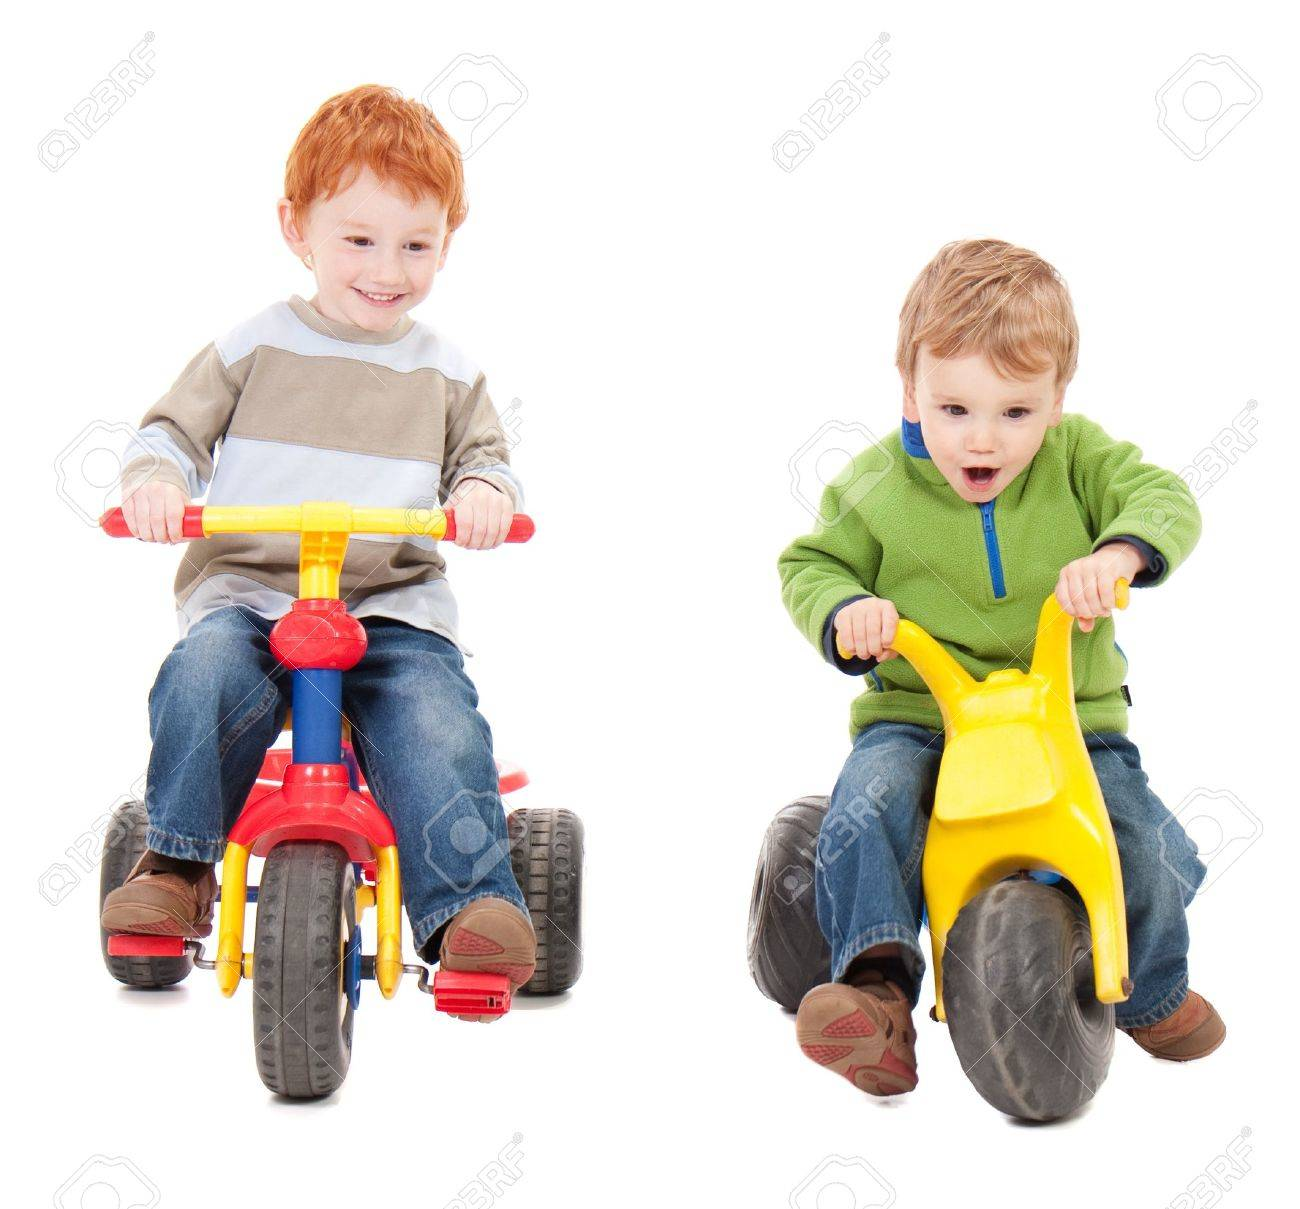 Children riding trycycles. Isolated on white. - 9334517